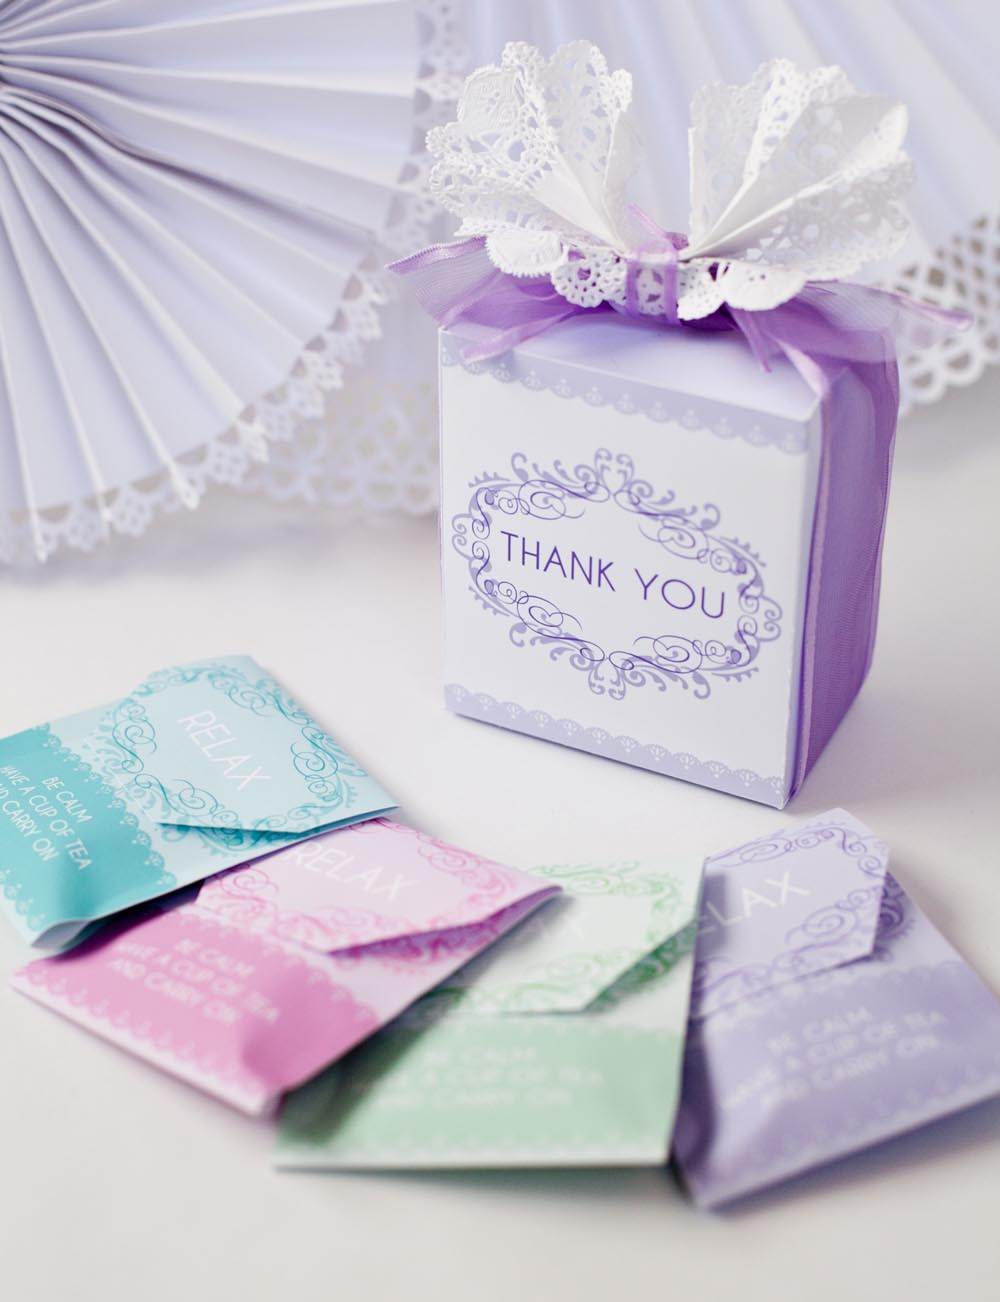 DIY Tea Party Favors